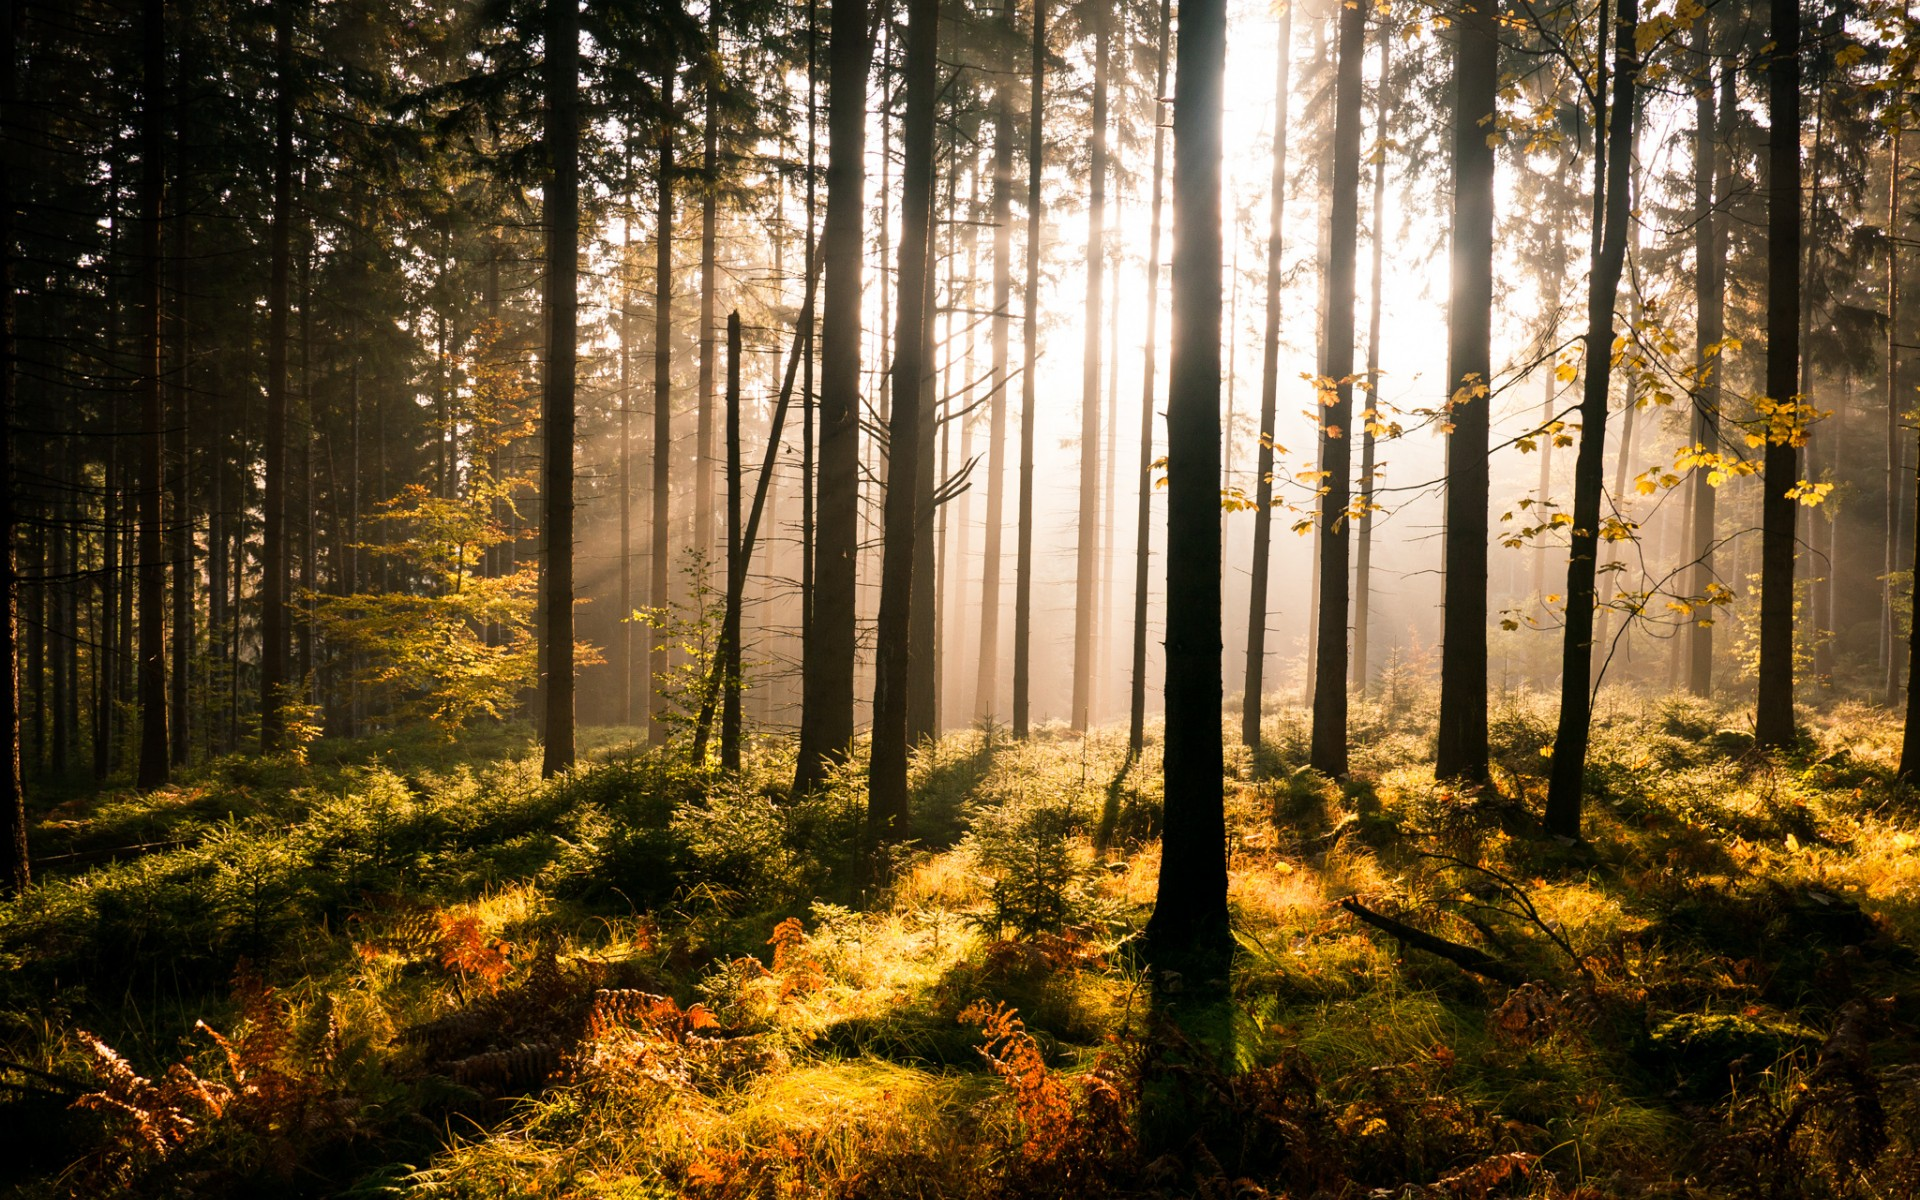 4k Fall Painting Wallpapers Pictures Of Forests Sun Hd Desktop Wallpapers 4k Hd